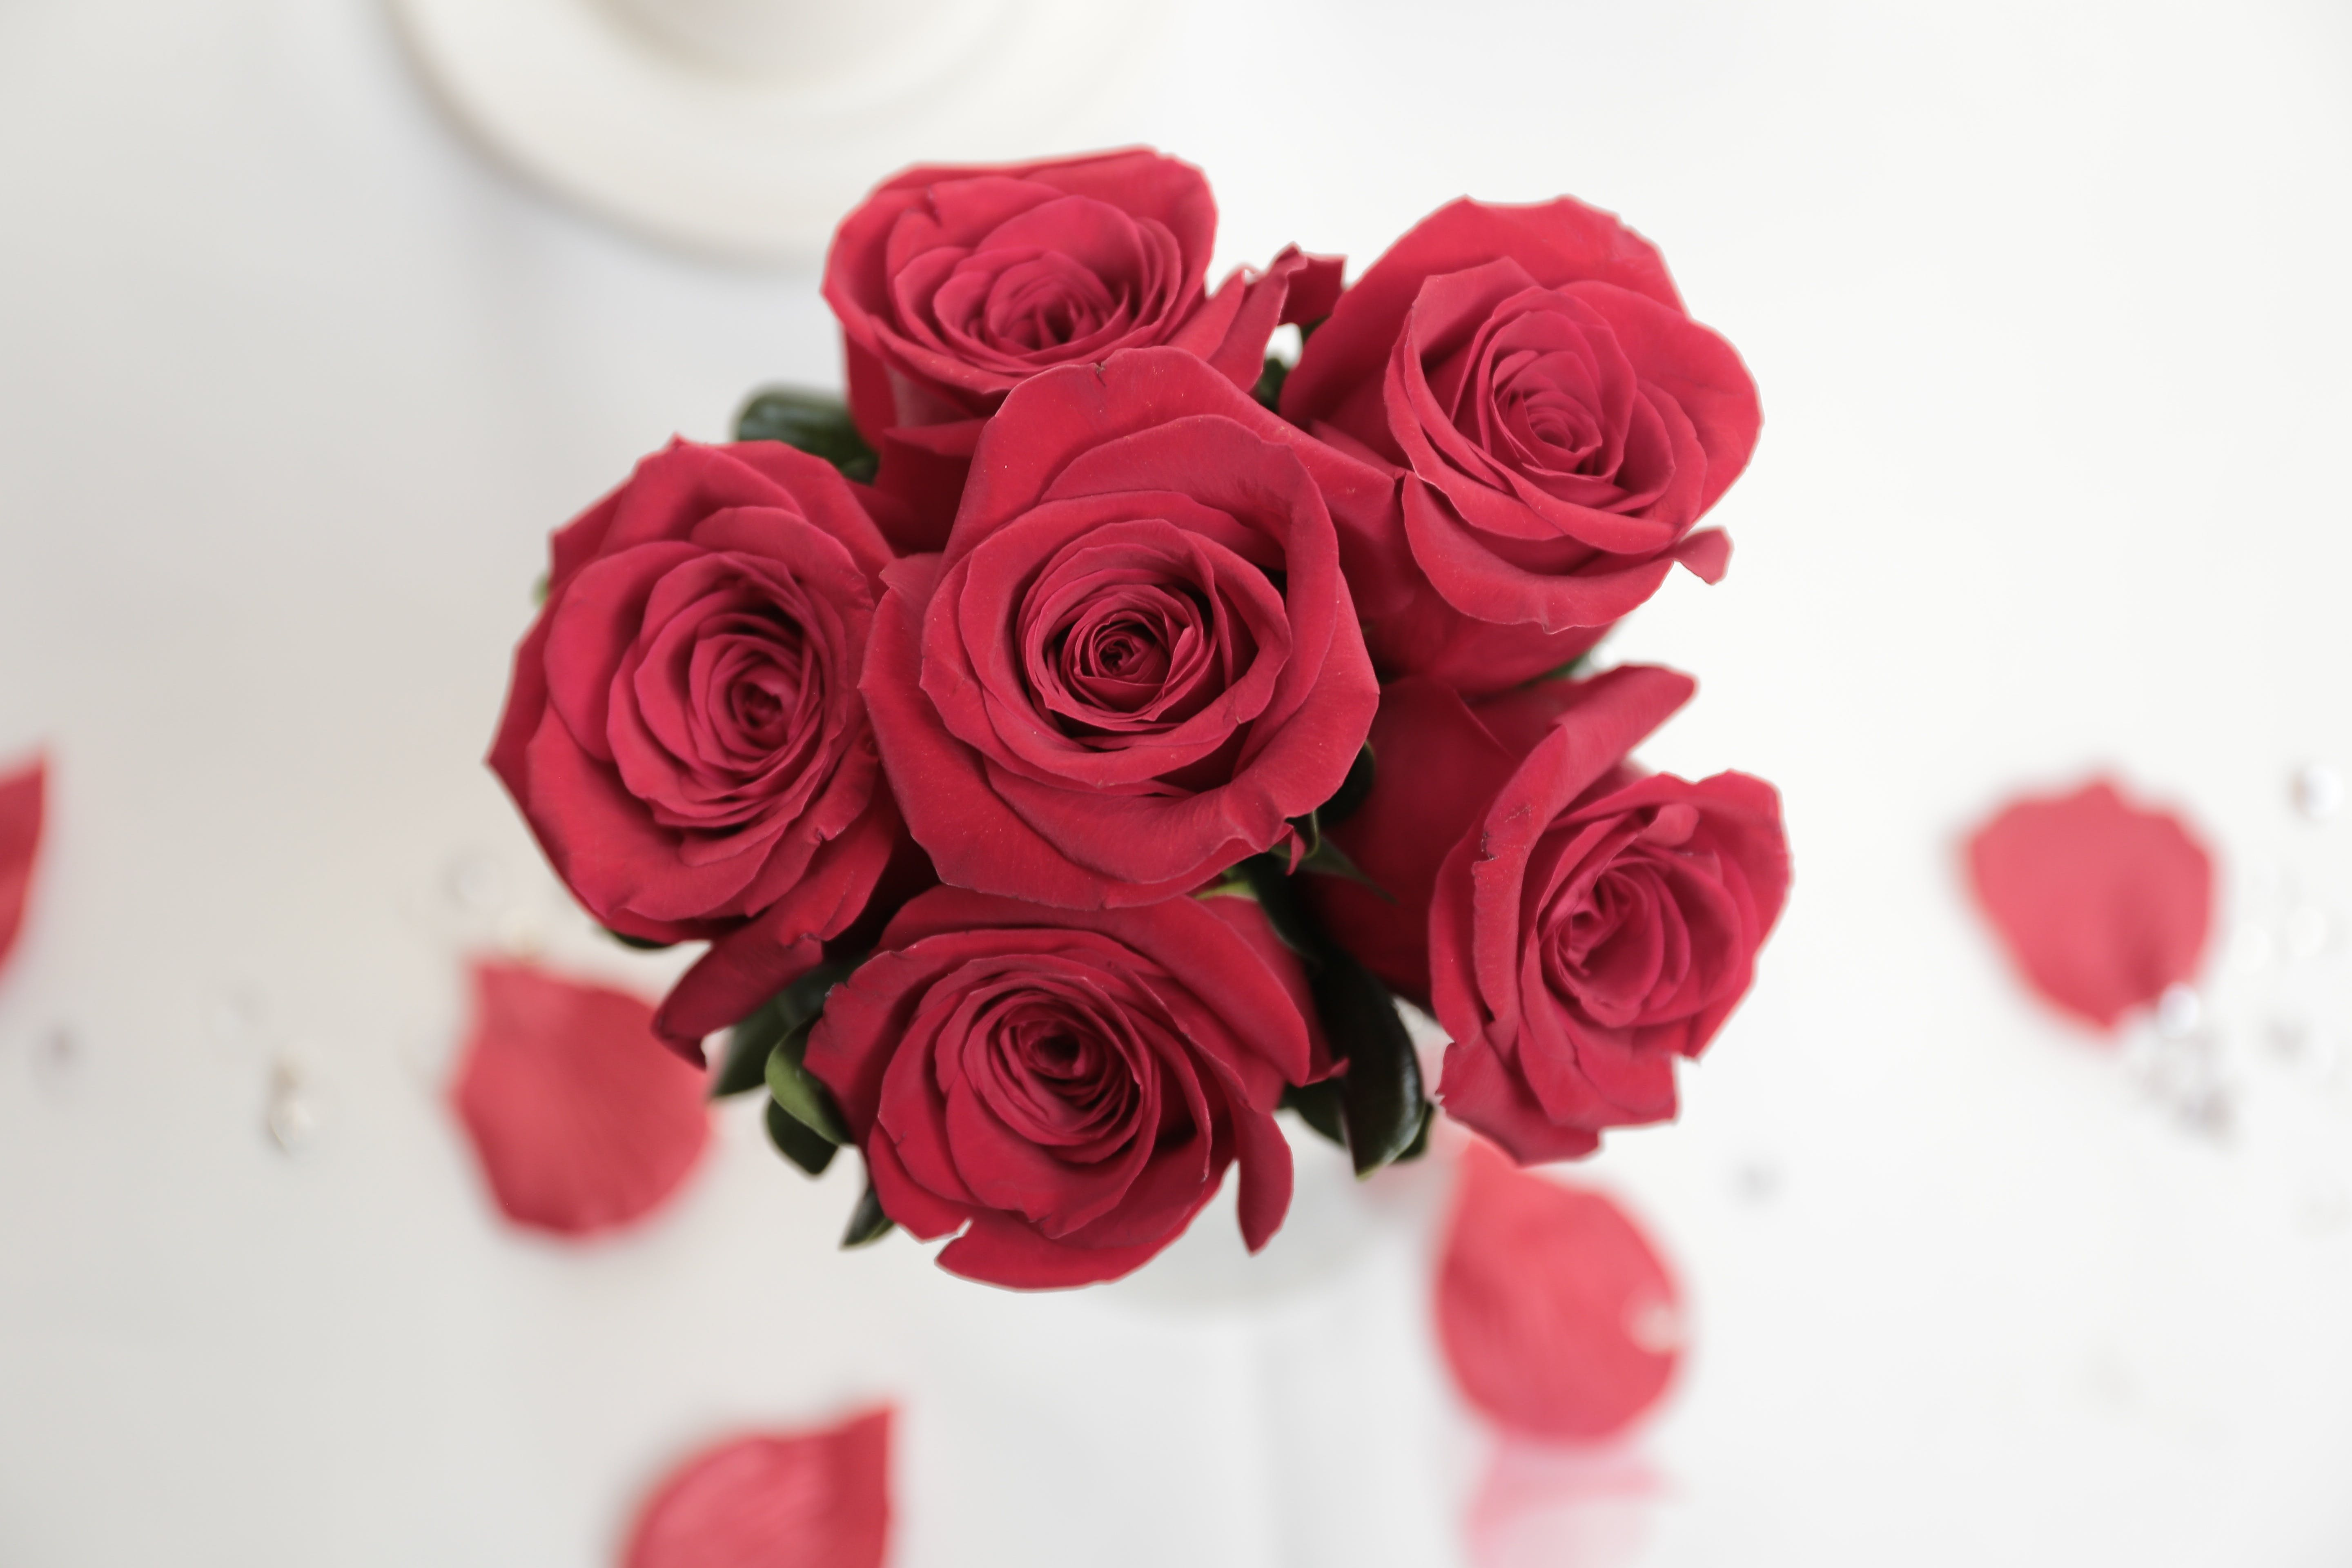 Free stock photo of flowers, red, roses, wedding